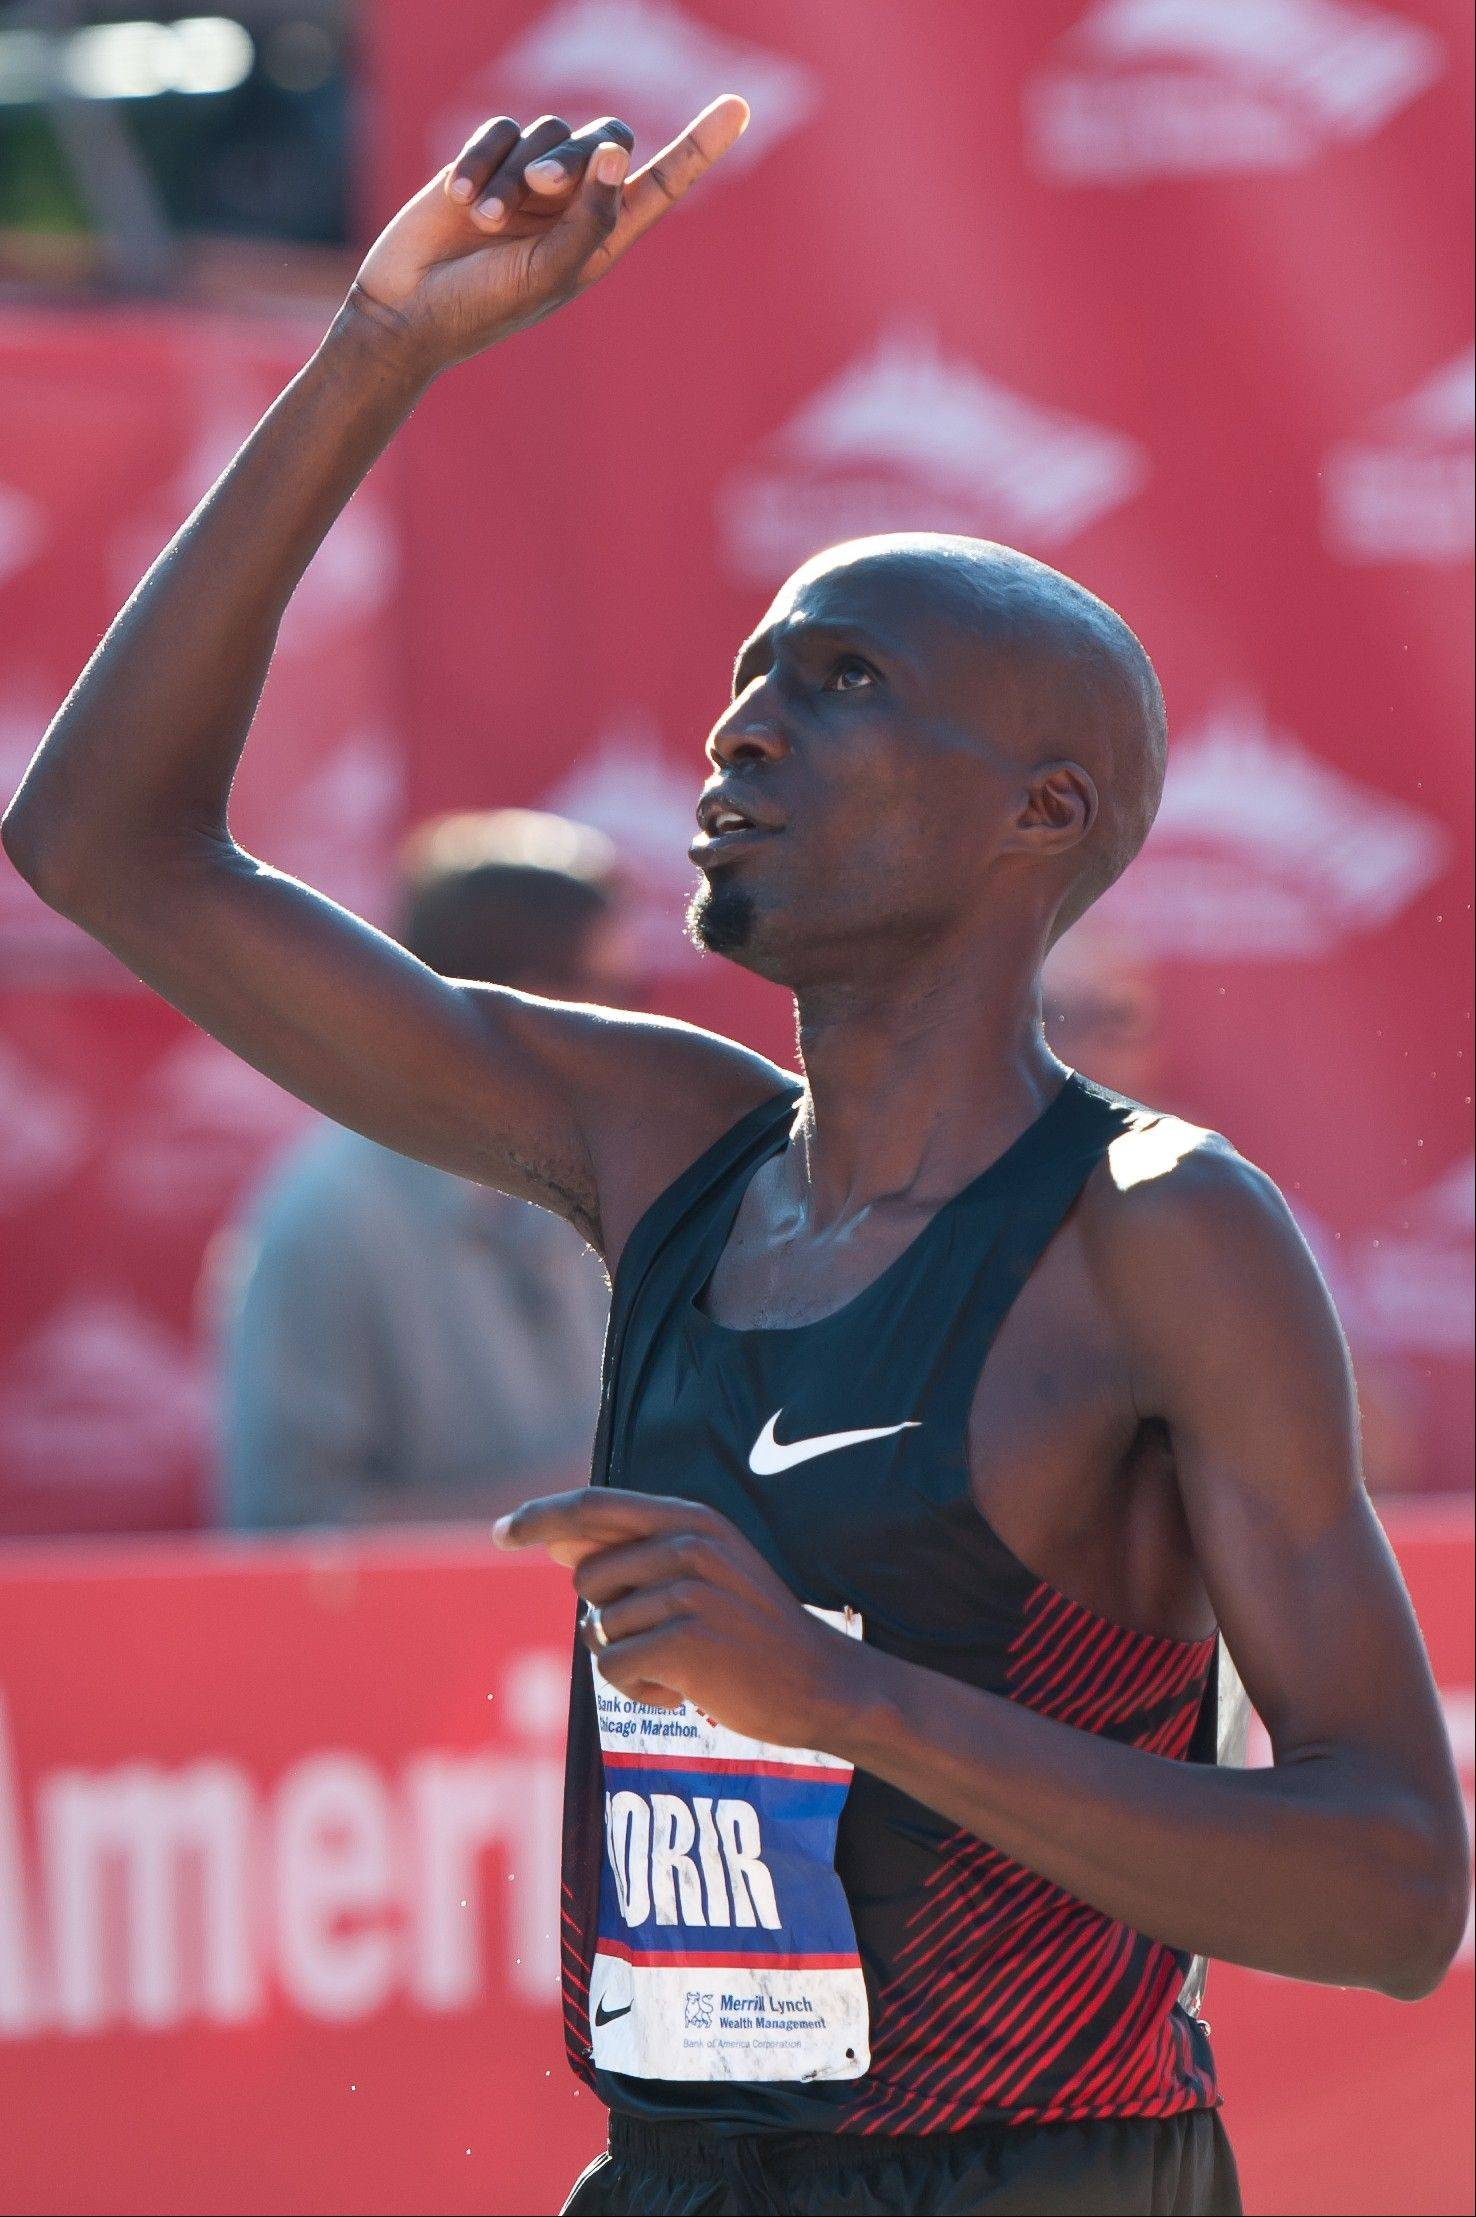 Wesley Korir, who has run well in four previous Chicago Marathons, will be back this fall to try for his first title. The Louisville-based runner from Kenya won the Boston Marathon in April and is the first elite runner to declare for the Chicago race.